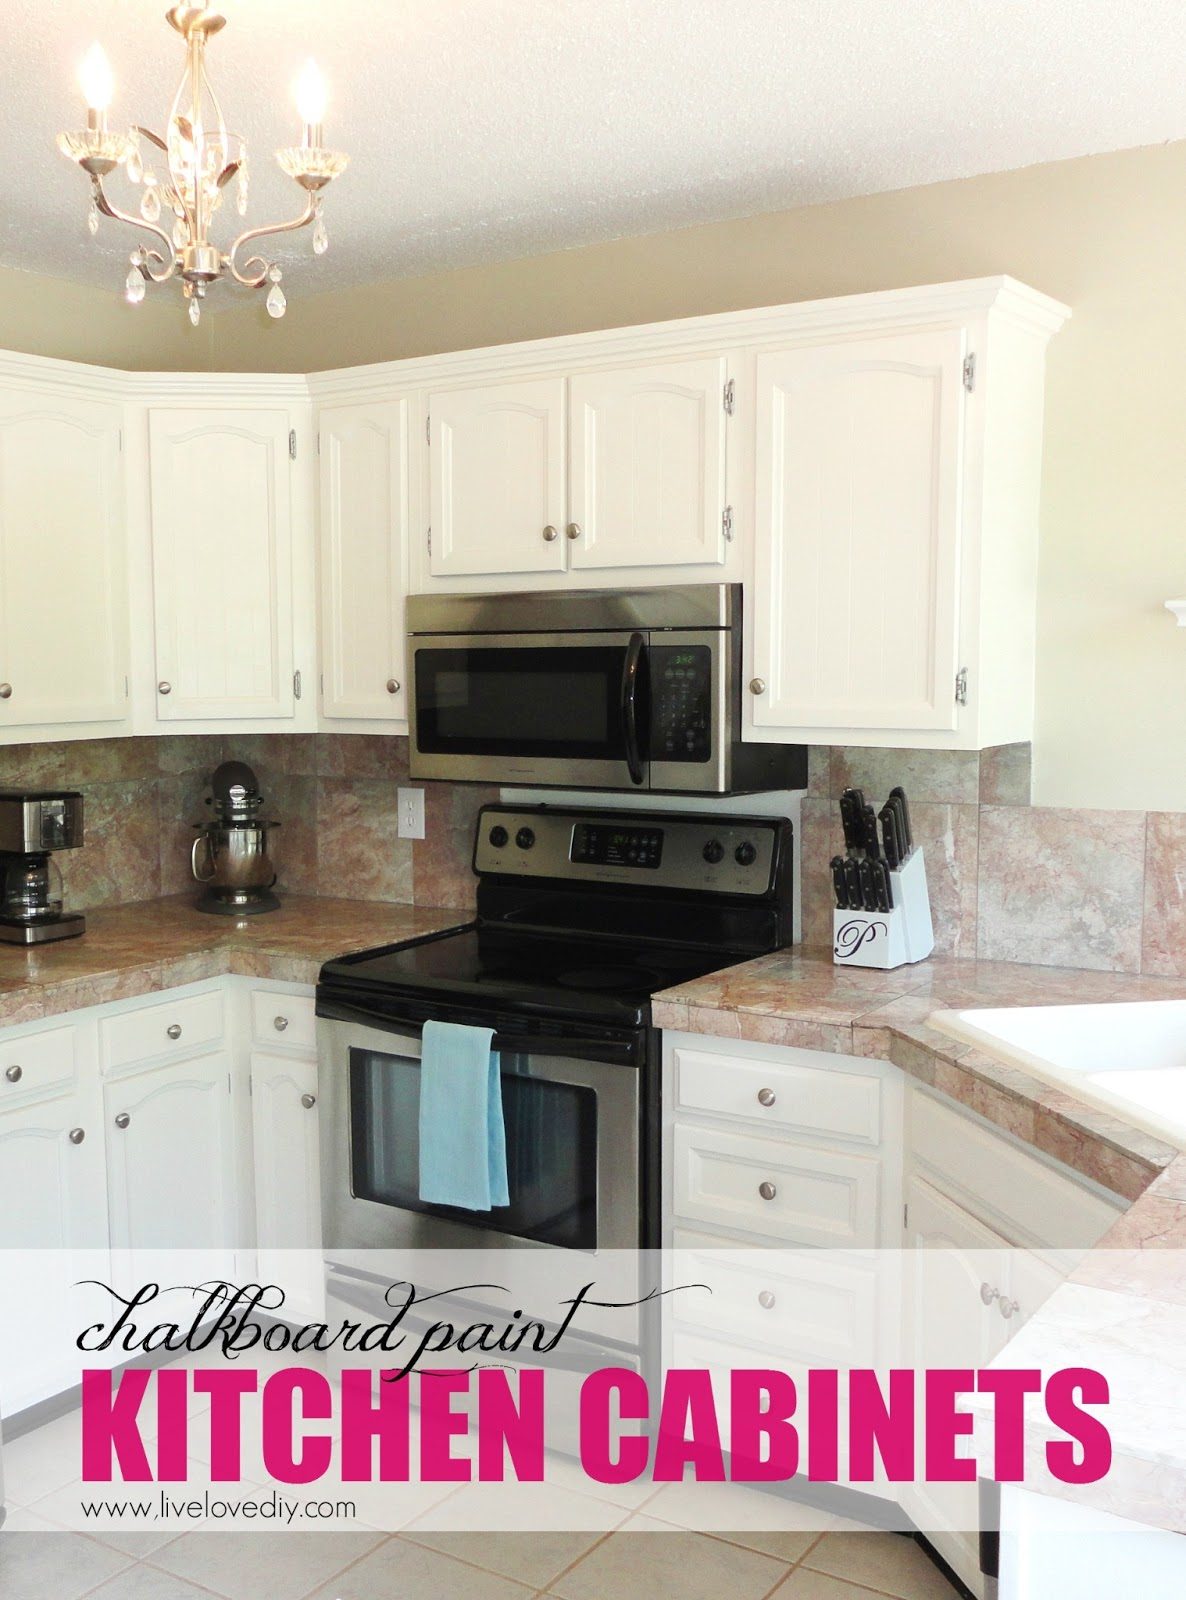 kitchen cabinet chalk paint makeover painted kitchen cabinets The Chalkboard Paint Kitchen Cabinet Makeover